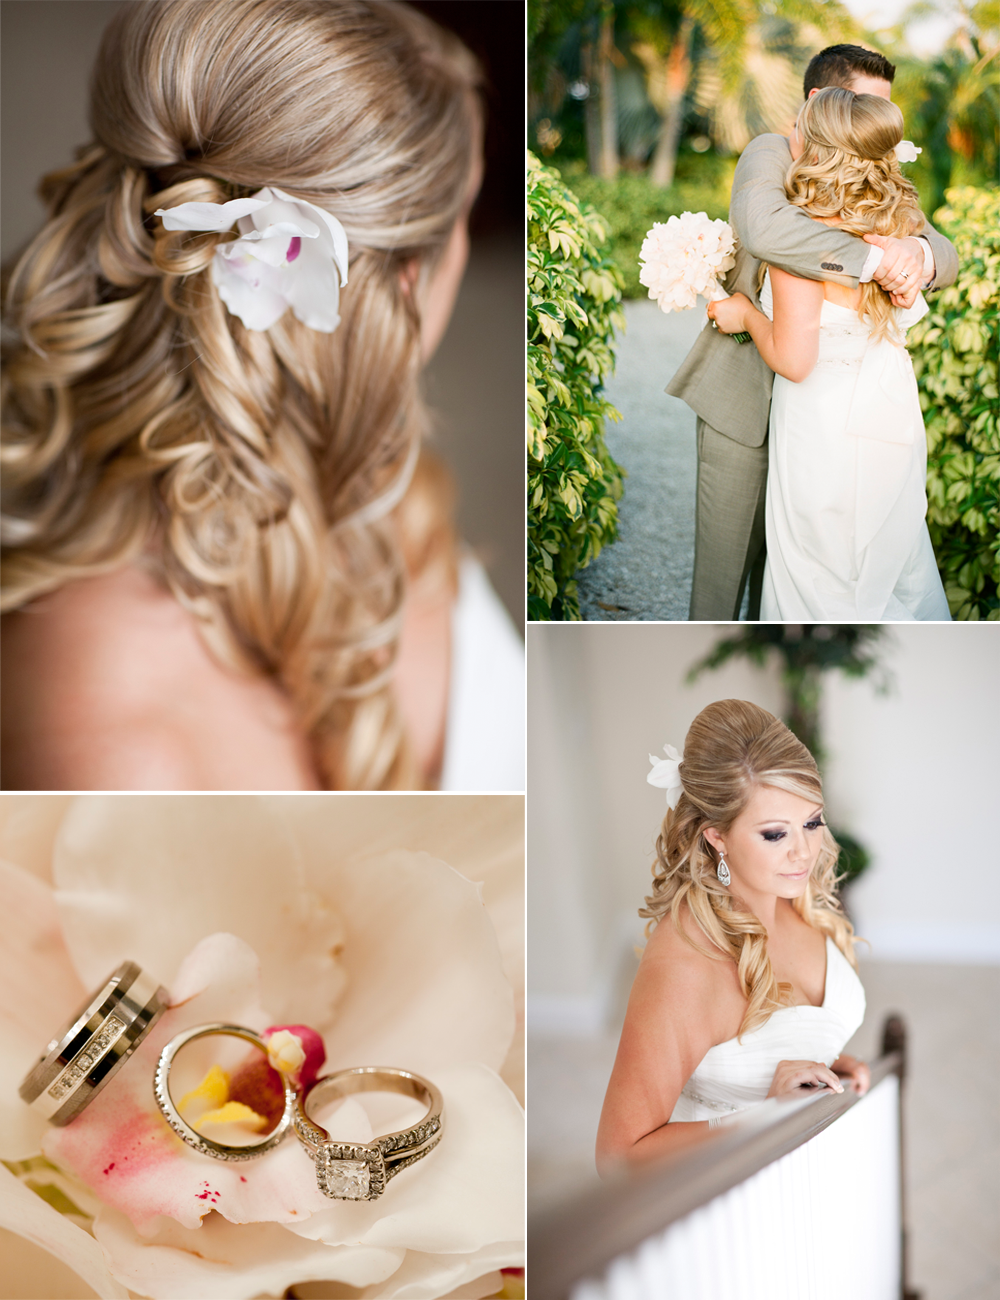 Bridesmaid Hairstyles For Outdoor Wedding The Holle